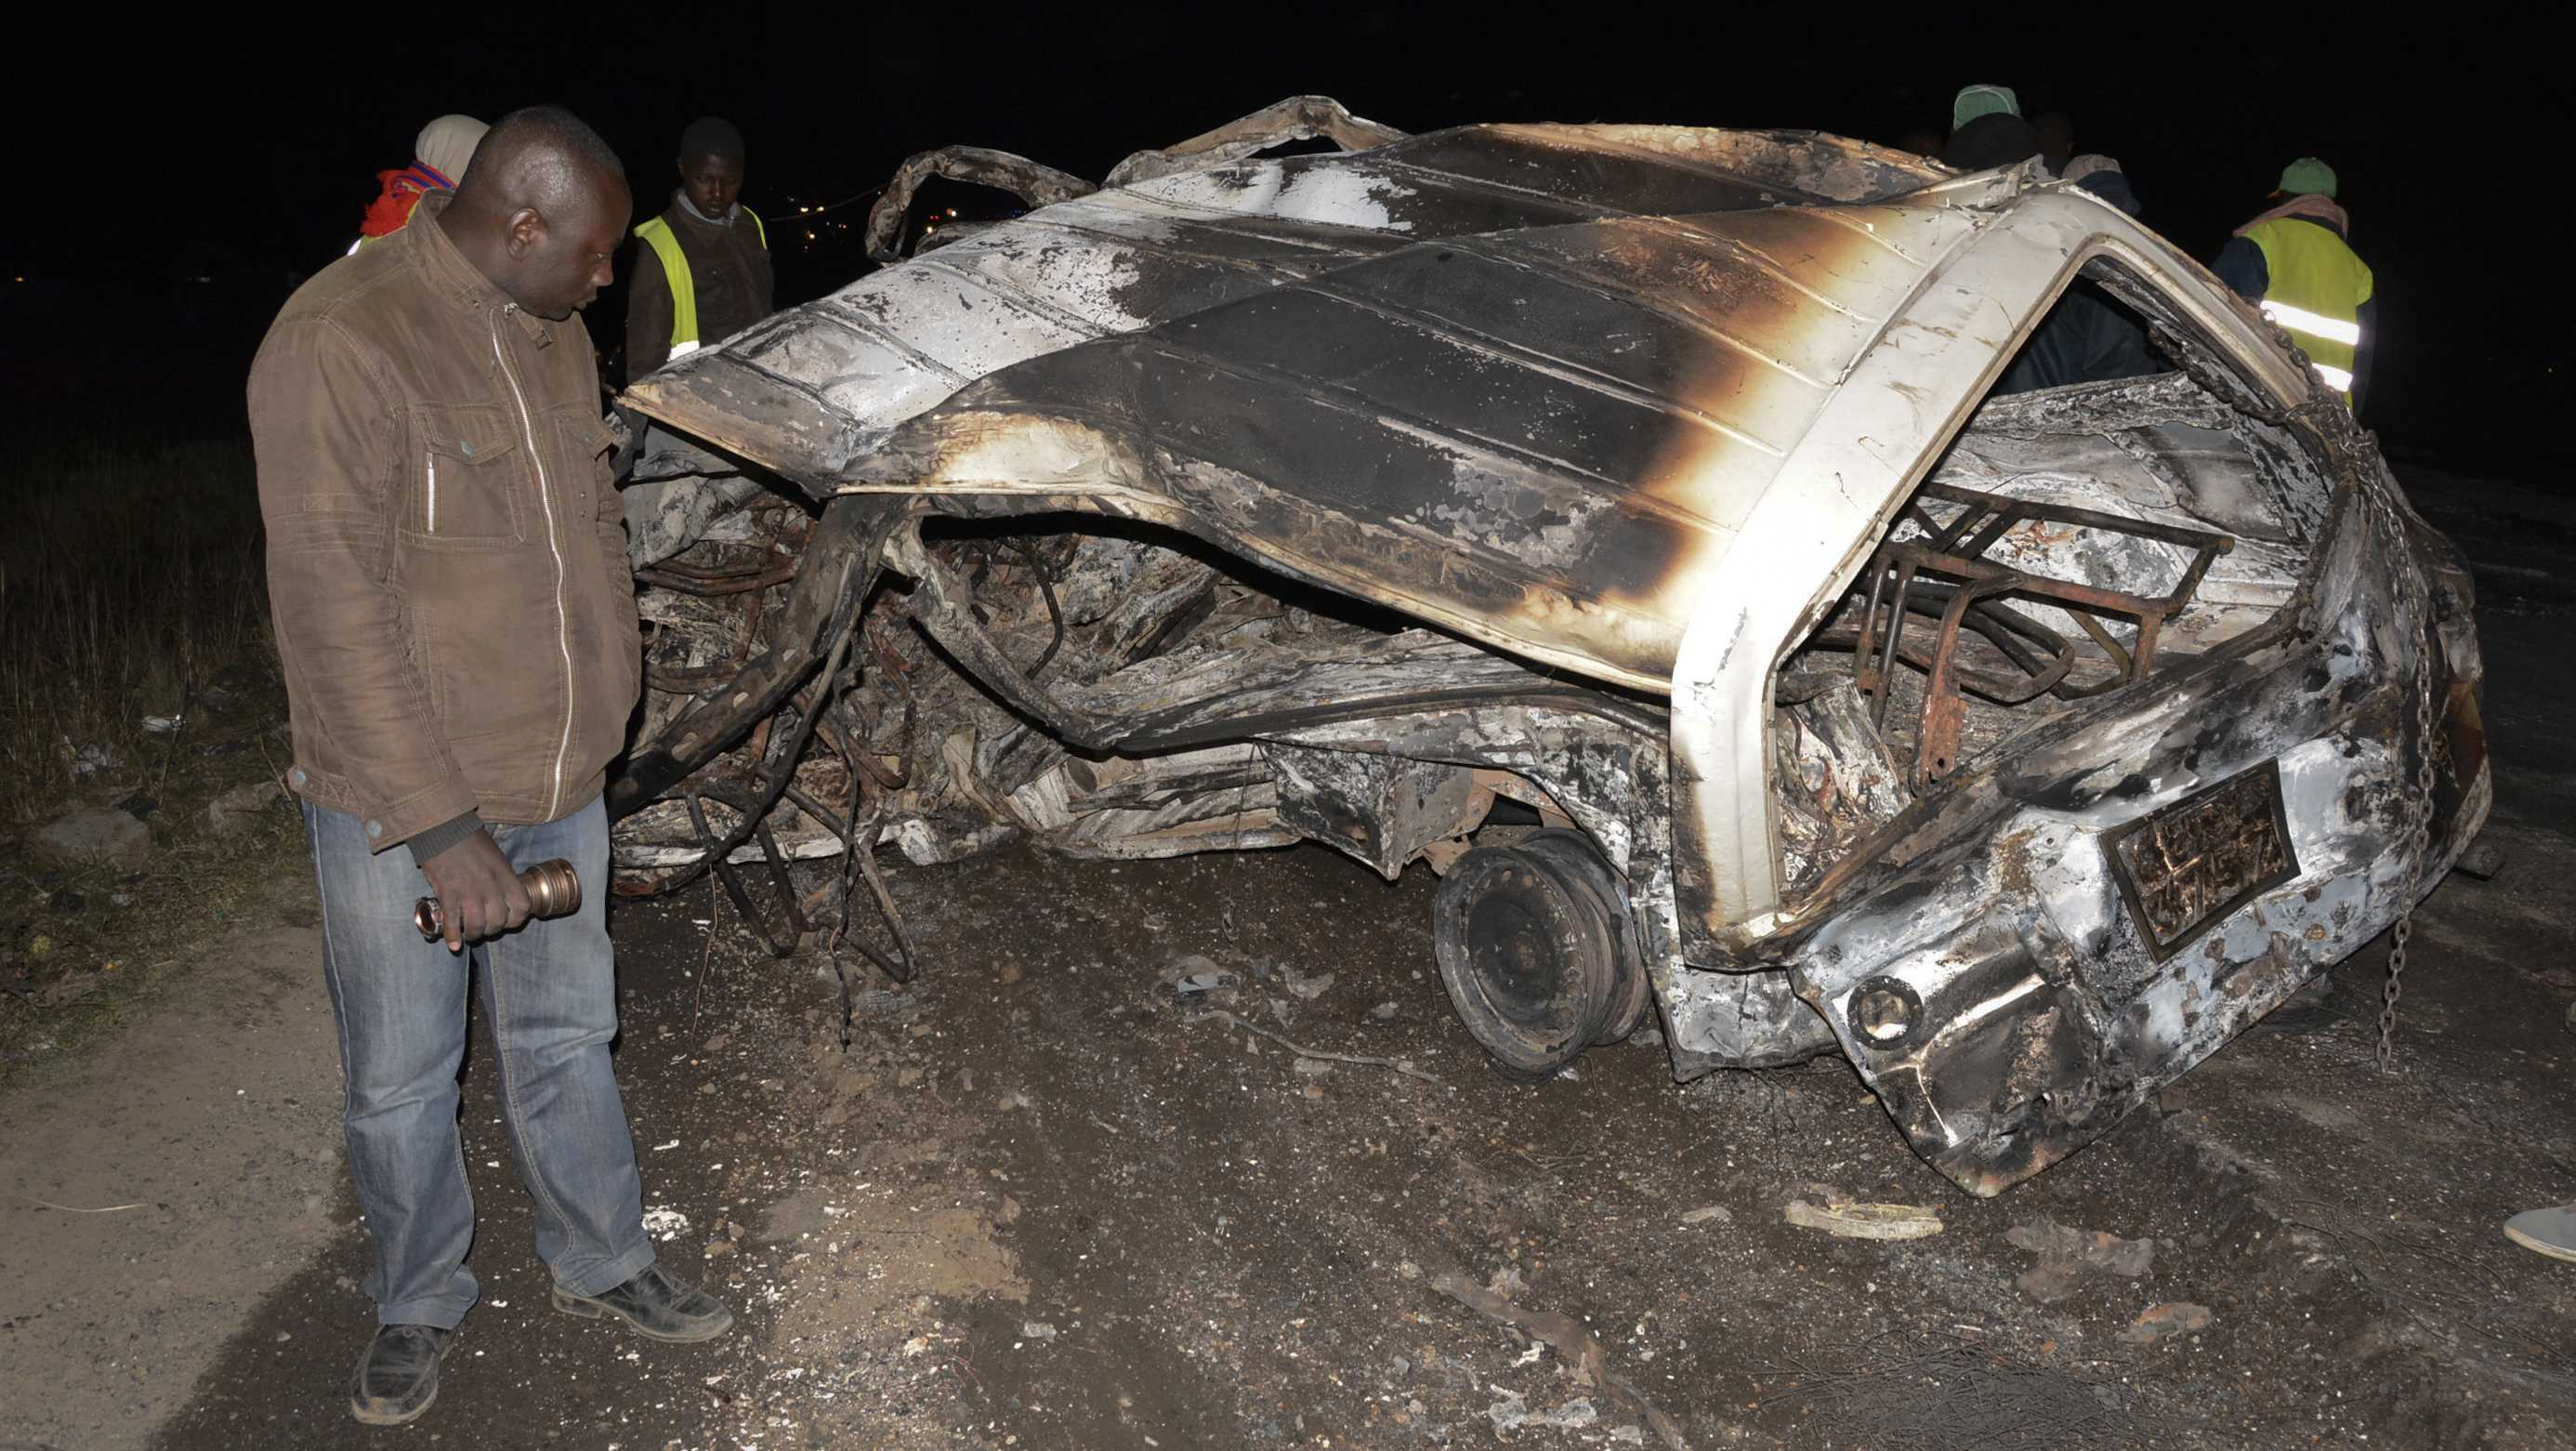 A man looks at the wreckage of a passenger minibus following an accident near Naivasha, Kenya Sunday, Dec. 11, 2017. A tanker carrying chemical gas slammed into other vehicles and burst into flames on a major road in Kenya, officials said Sunday.